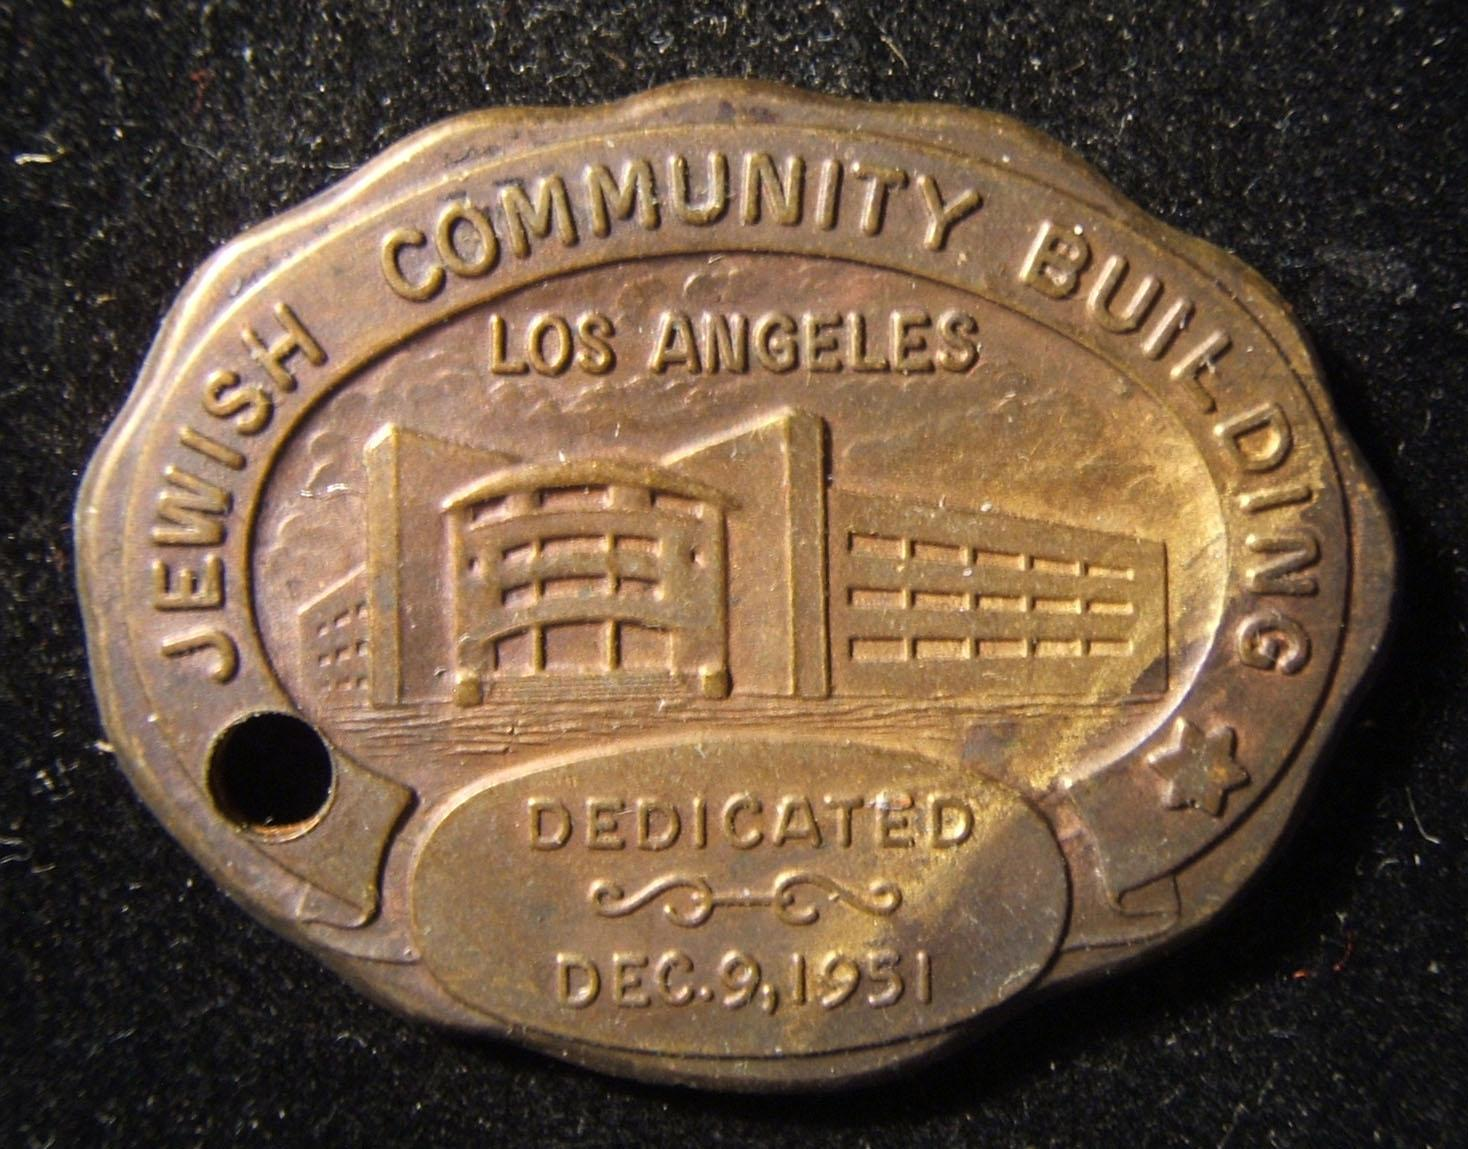 US: Los Angeles Jewish Community Building establishment commemorative tallion, with image of the structure and dedication date below (Dec. 9 1951), with quotation from Yeshayahu on